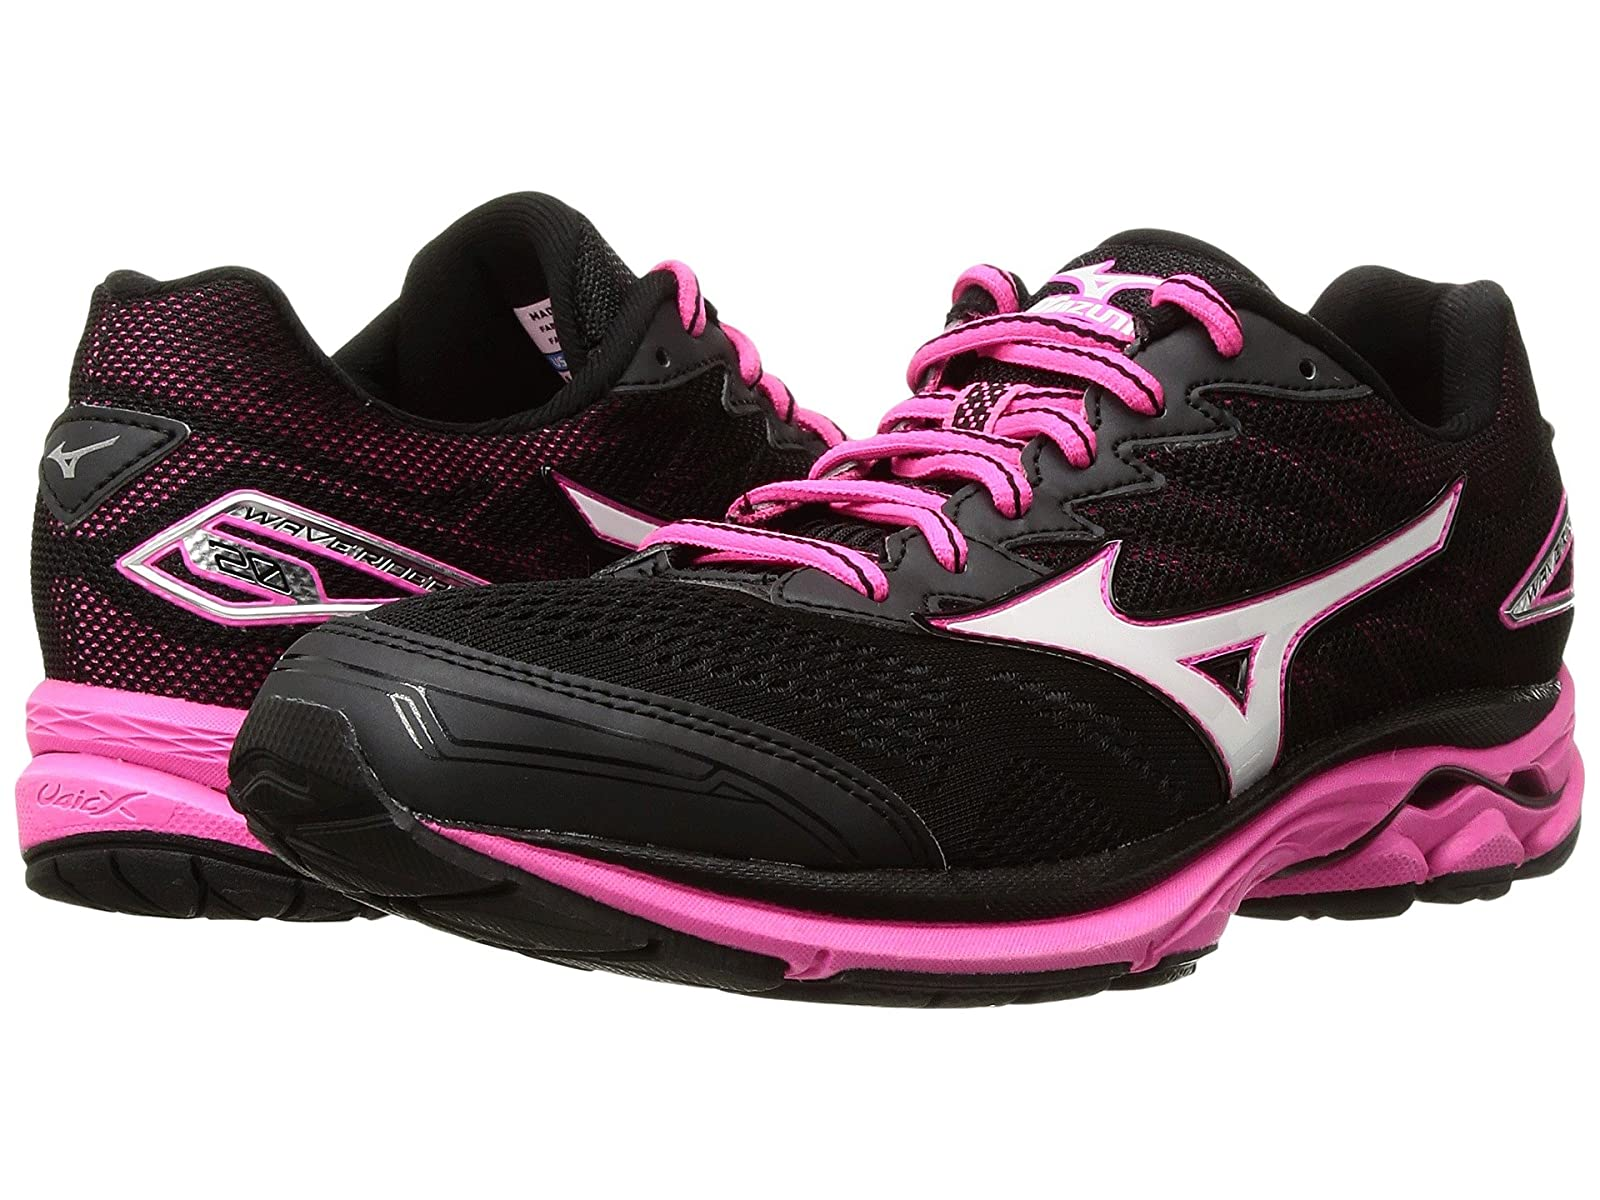 Mizuno Wave Rider 20Cheap and distinctive eye-catching shoes